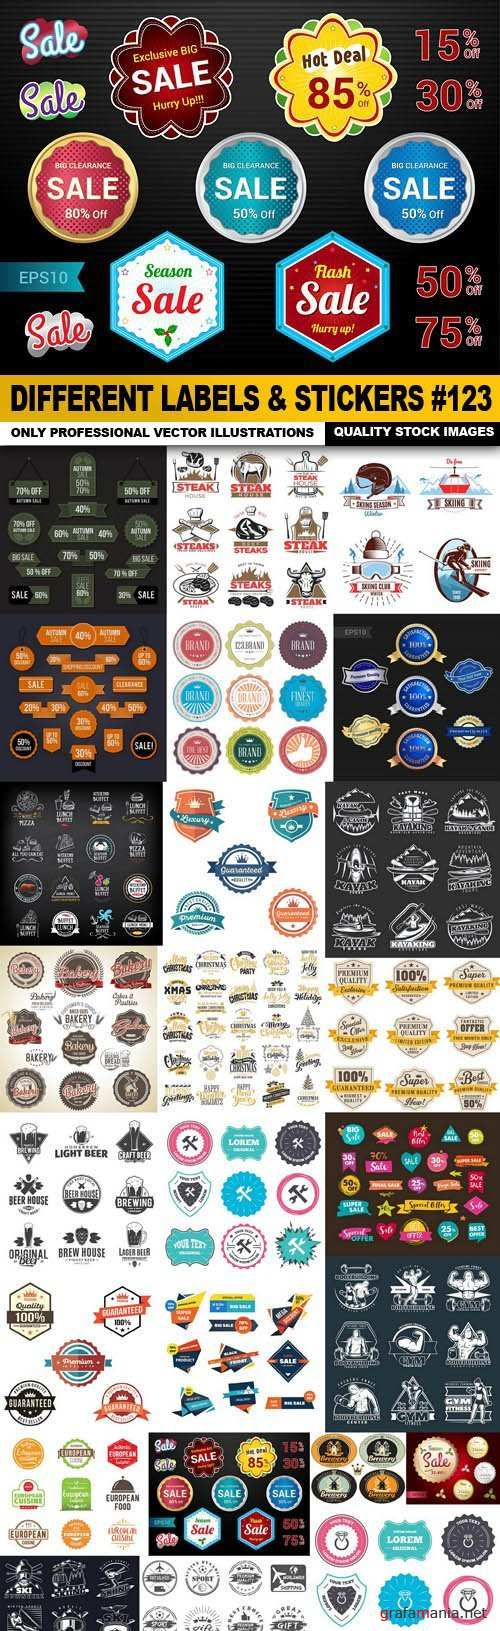 Different Labels & Stickers #123 - 25 Vector